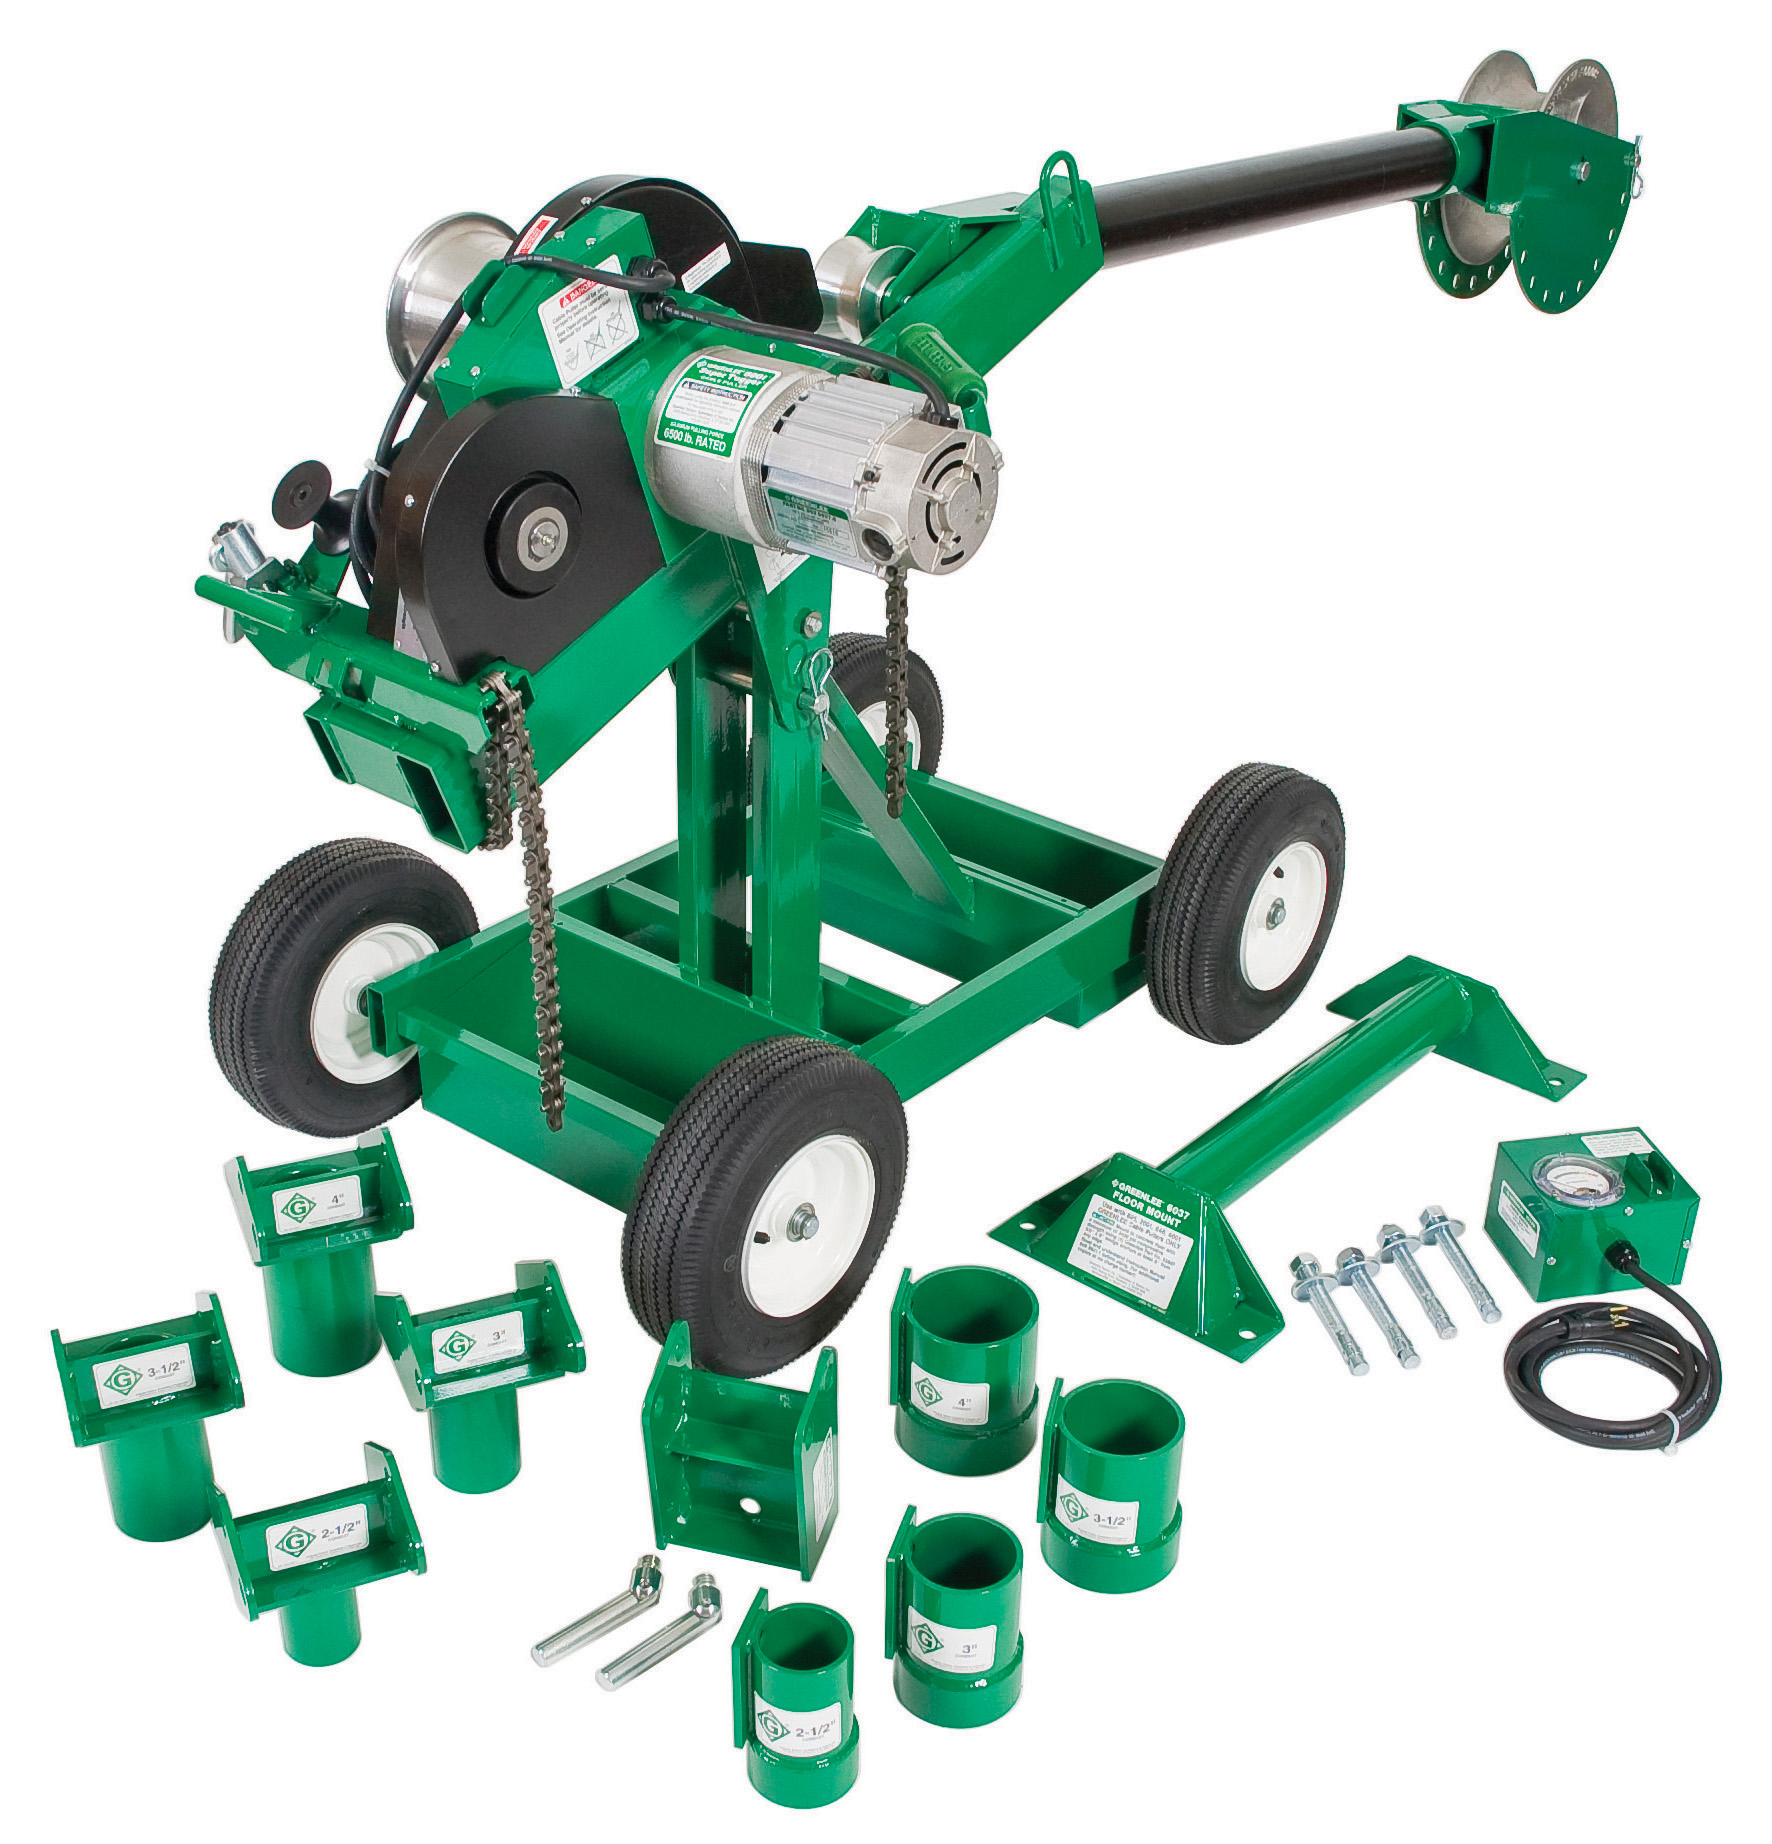 ELECTRICAL TOOLS & ACCESSORIES | Cable Puller Packages | Greenlee ...